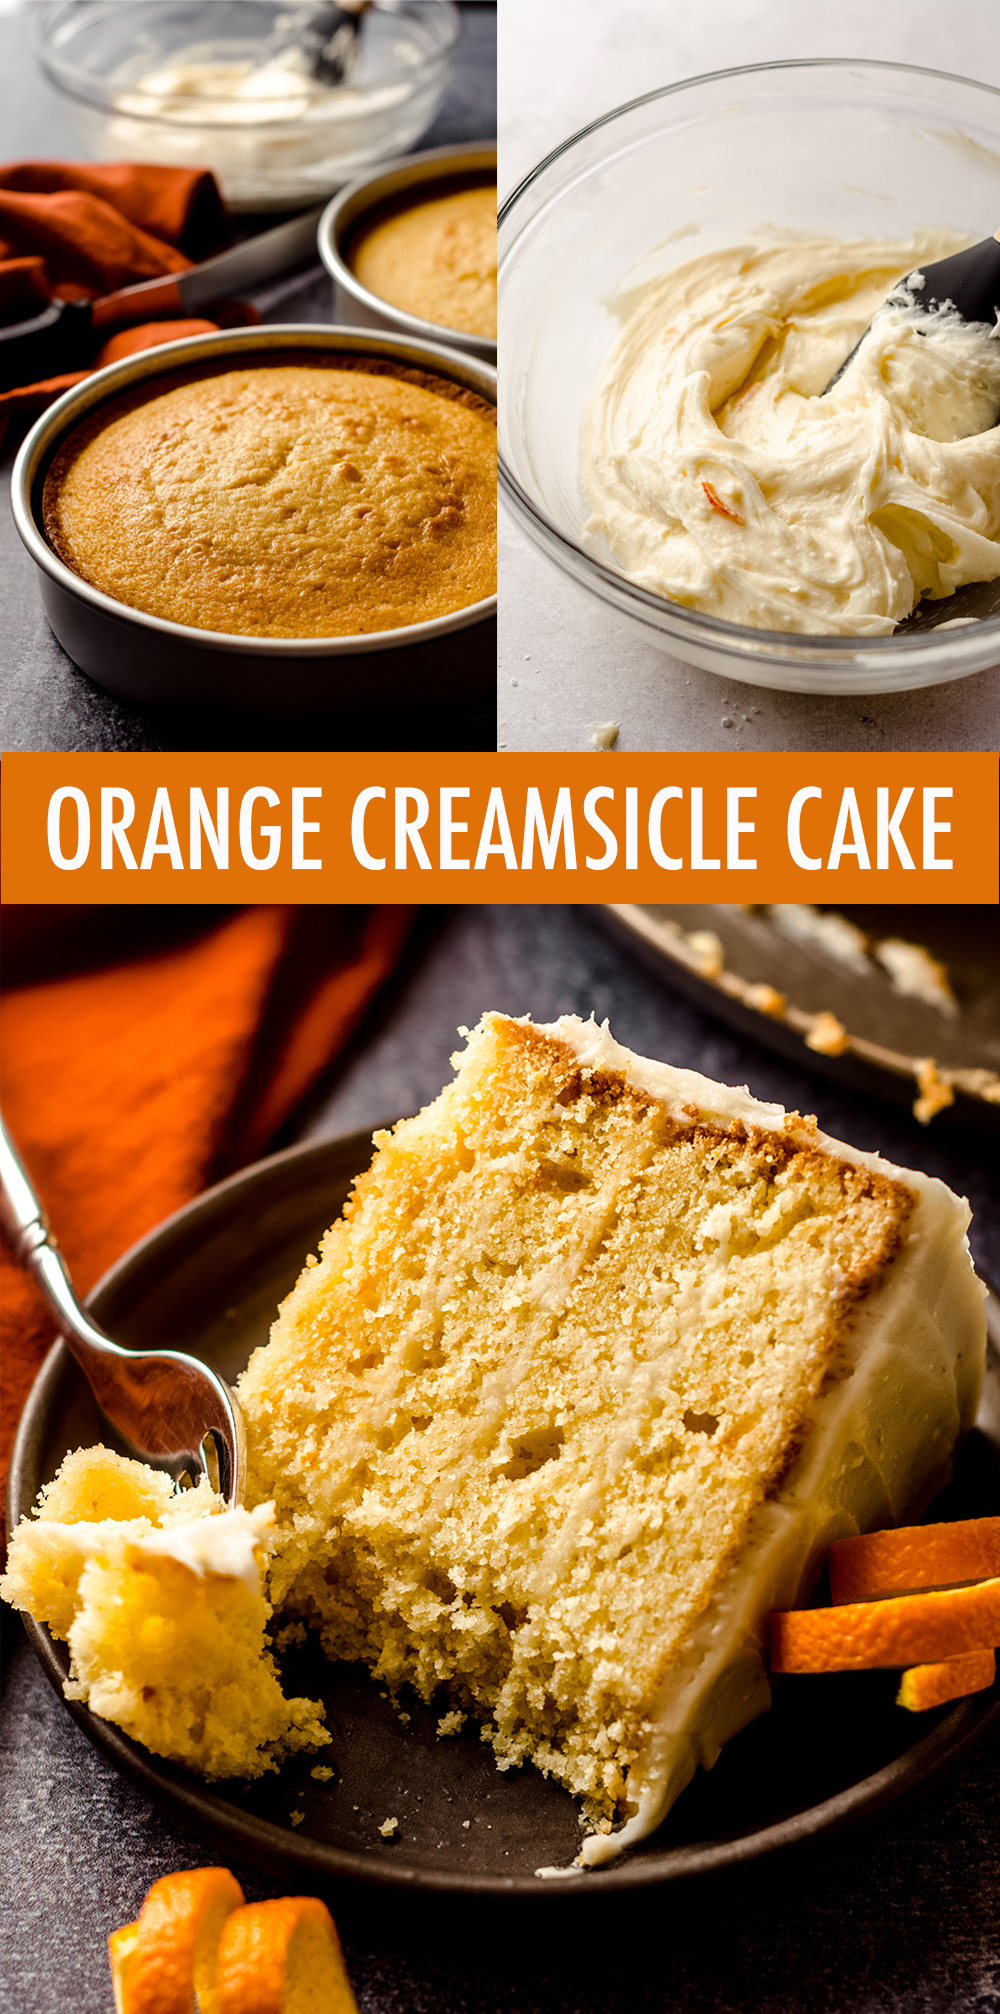 A moist and flavorful orange vanilla cake full of bright and zesty orange marmalade. Sunny orange cream cheese frosting makes this orange creamsicle cake simply irresistible!